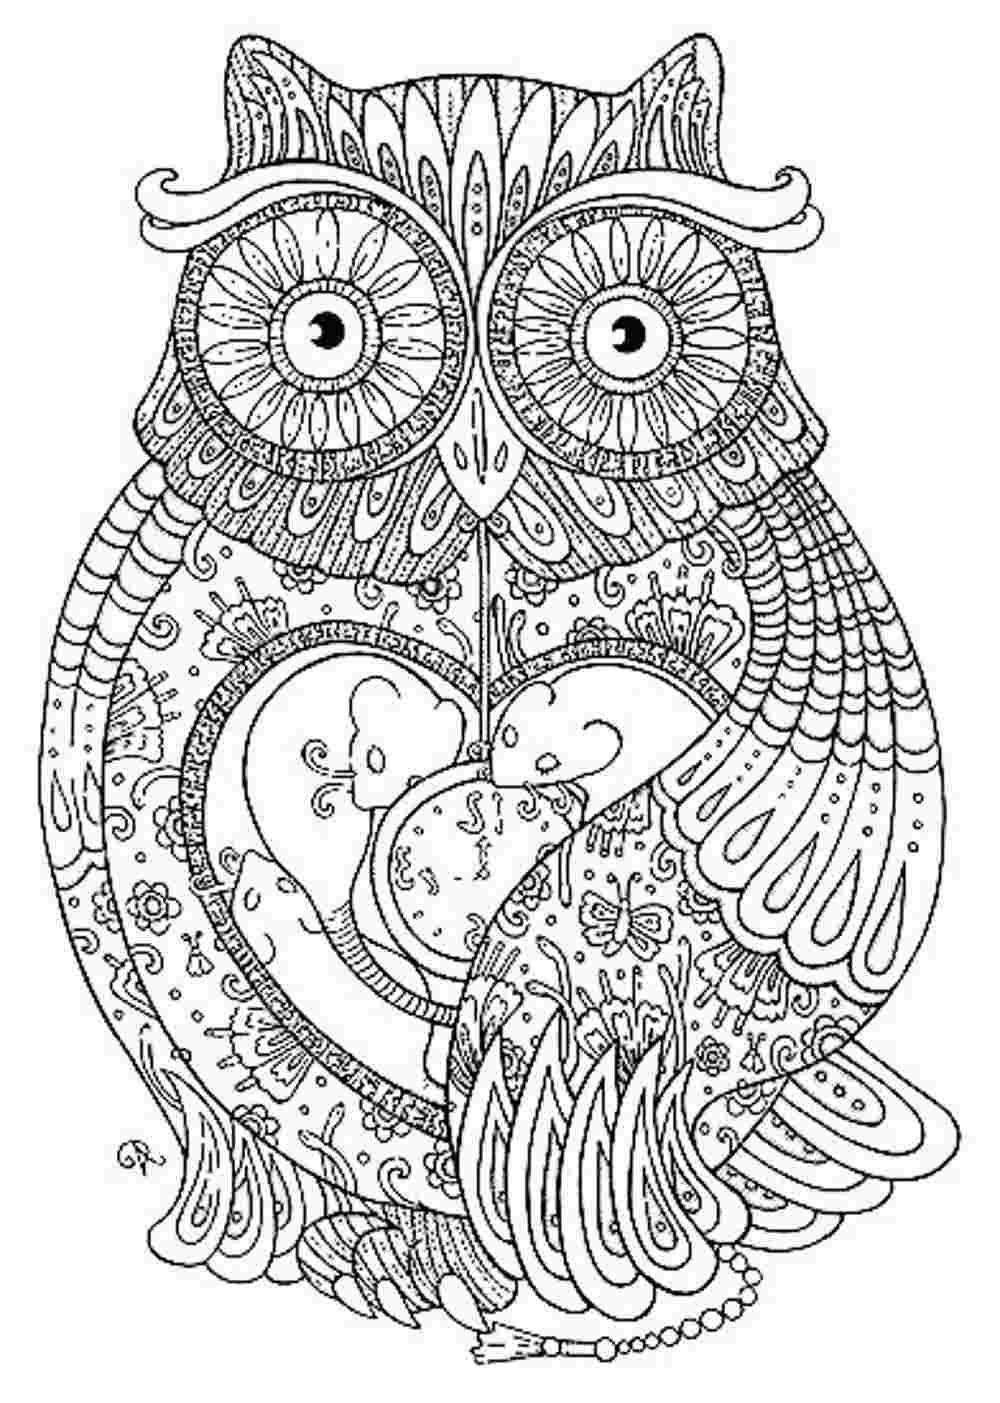 Animal mandala coloring pages to download and print for free | Craft ...